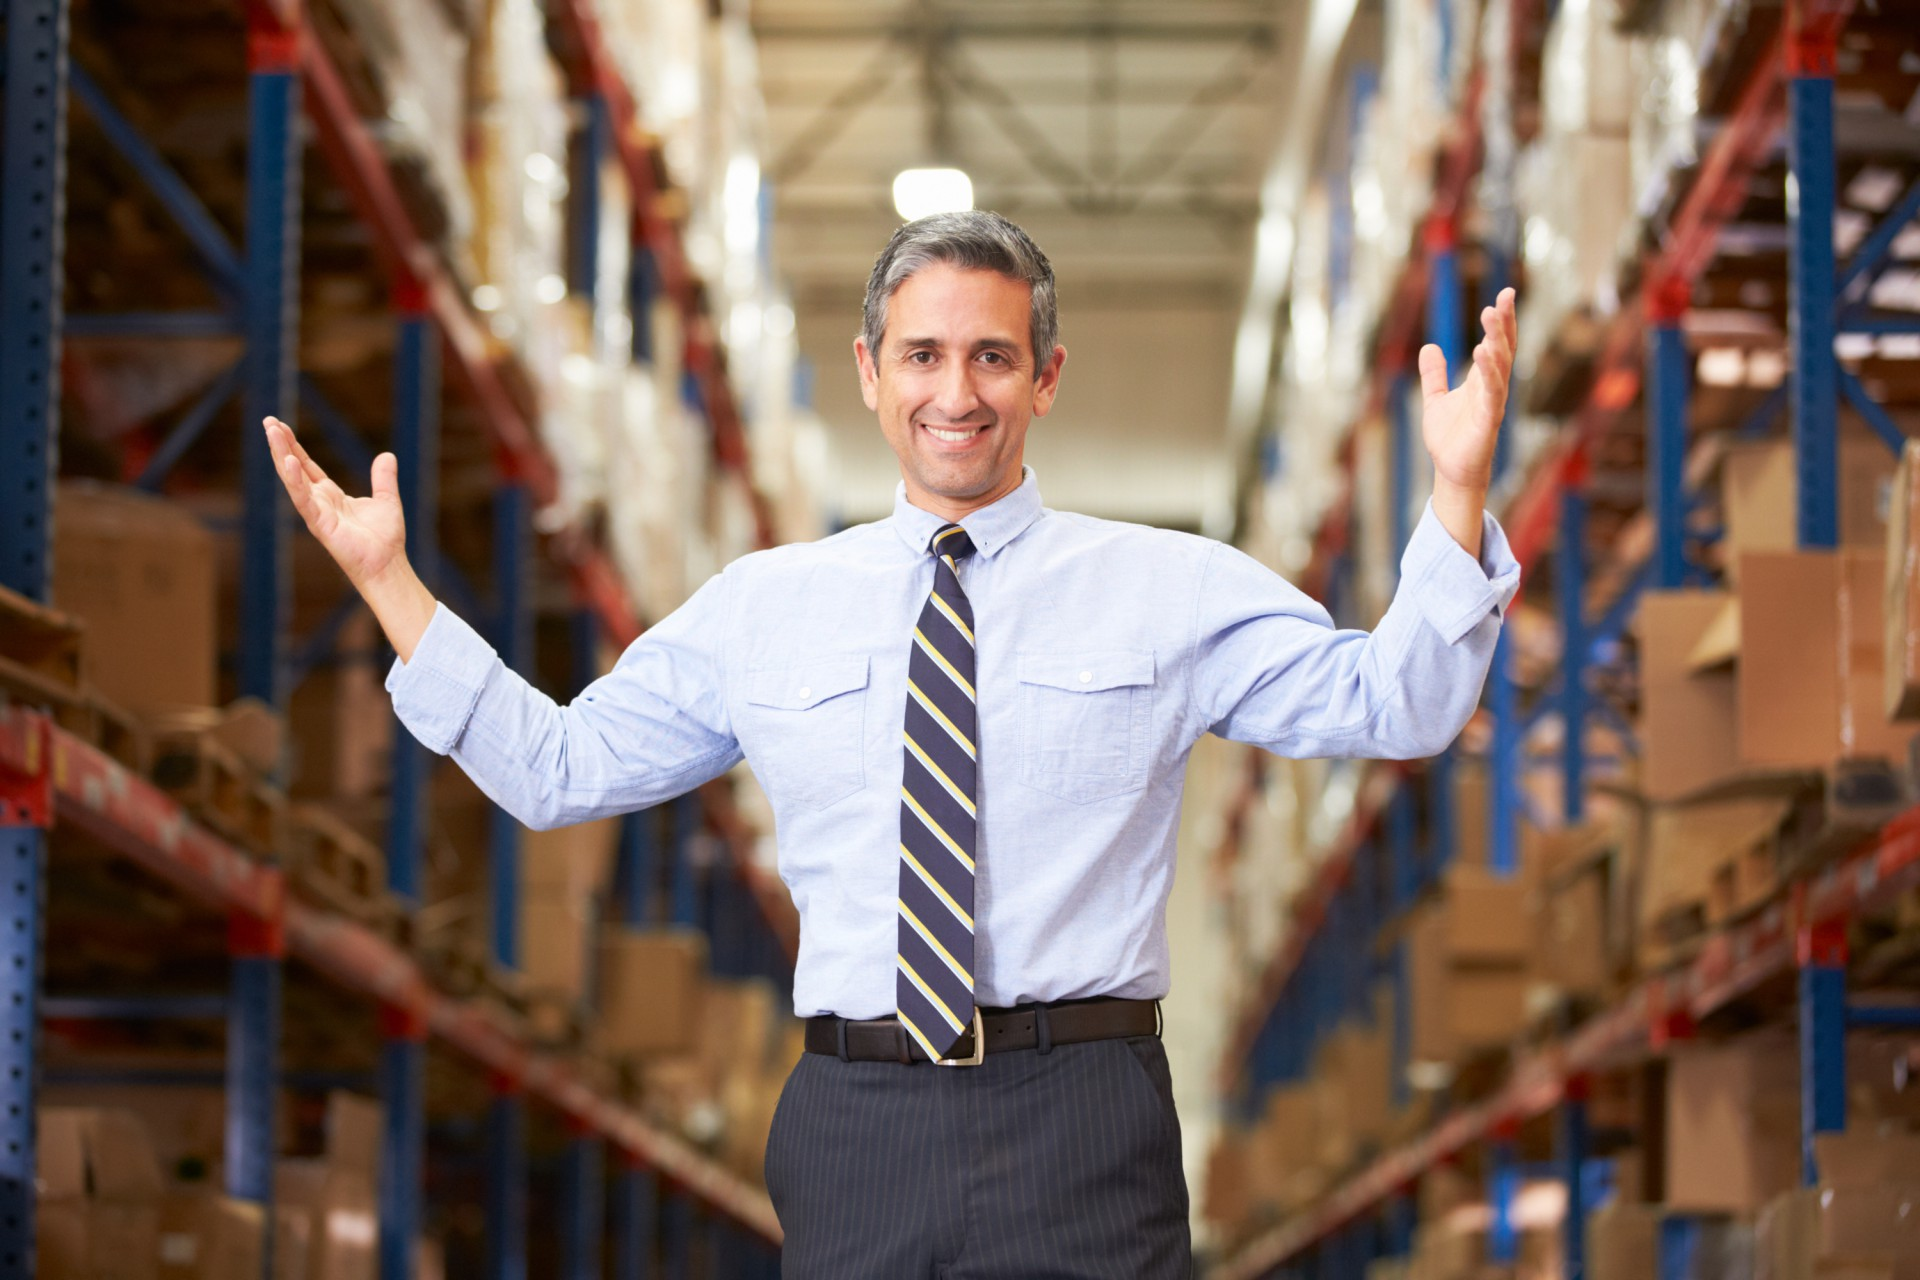 Man standing in warehouse.